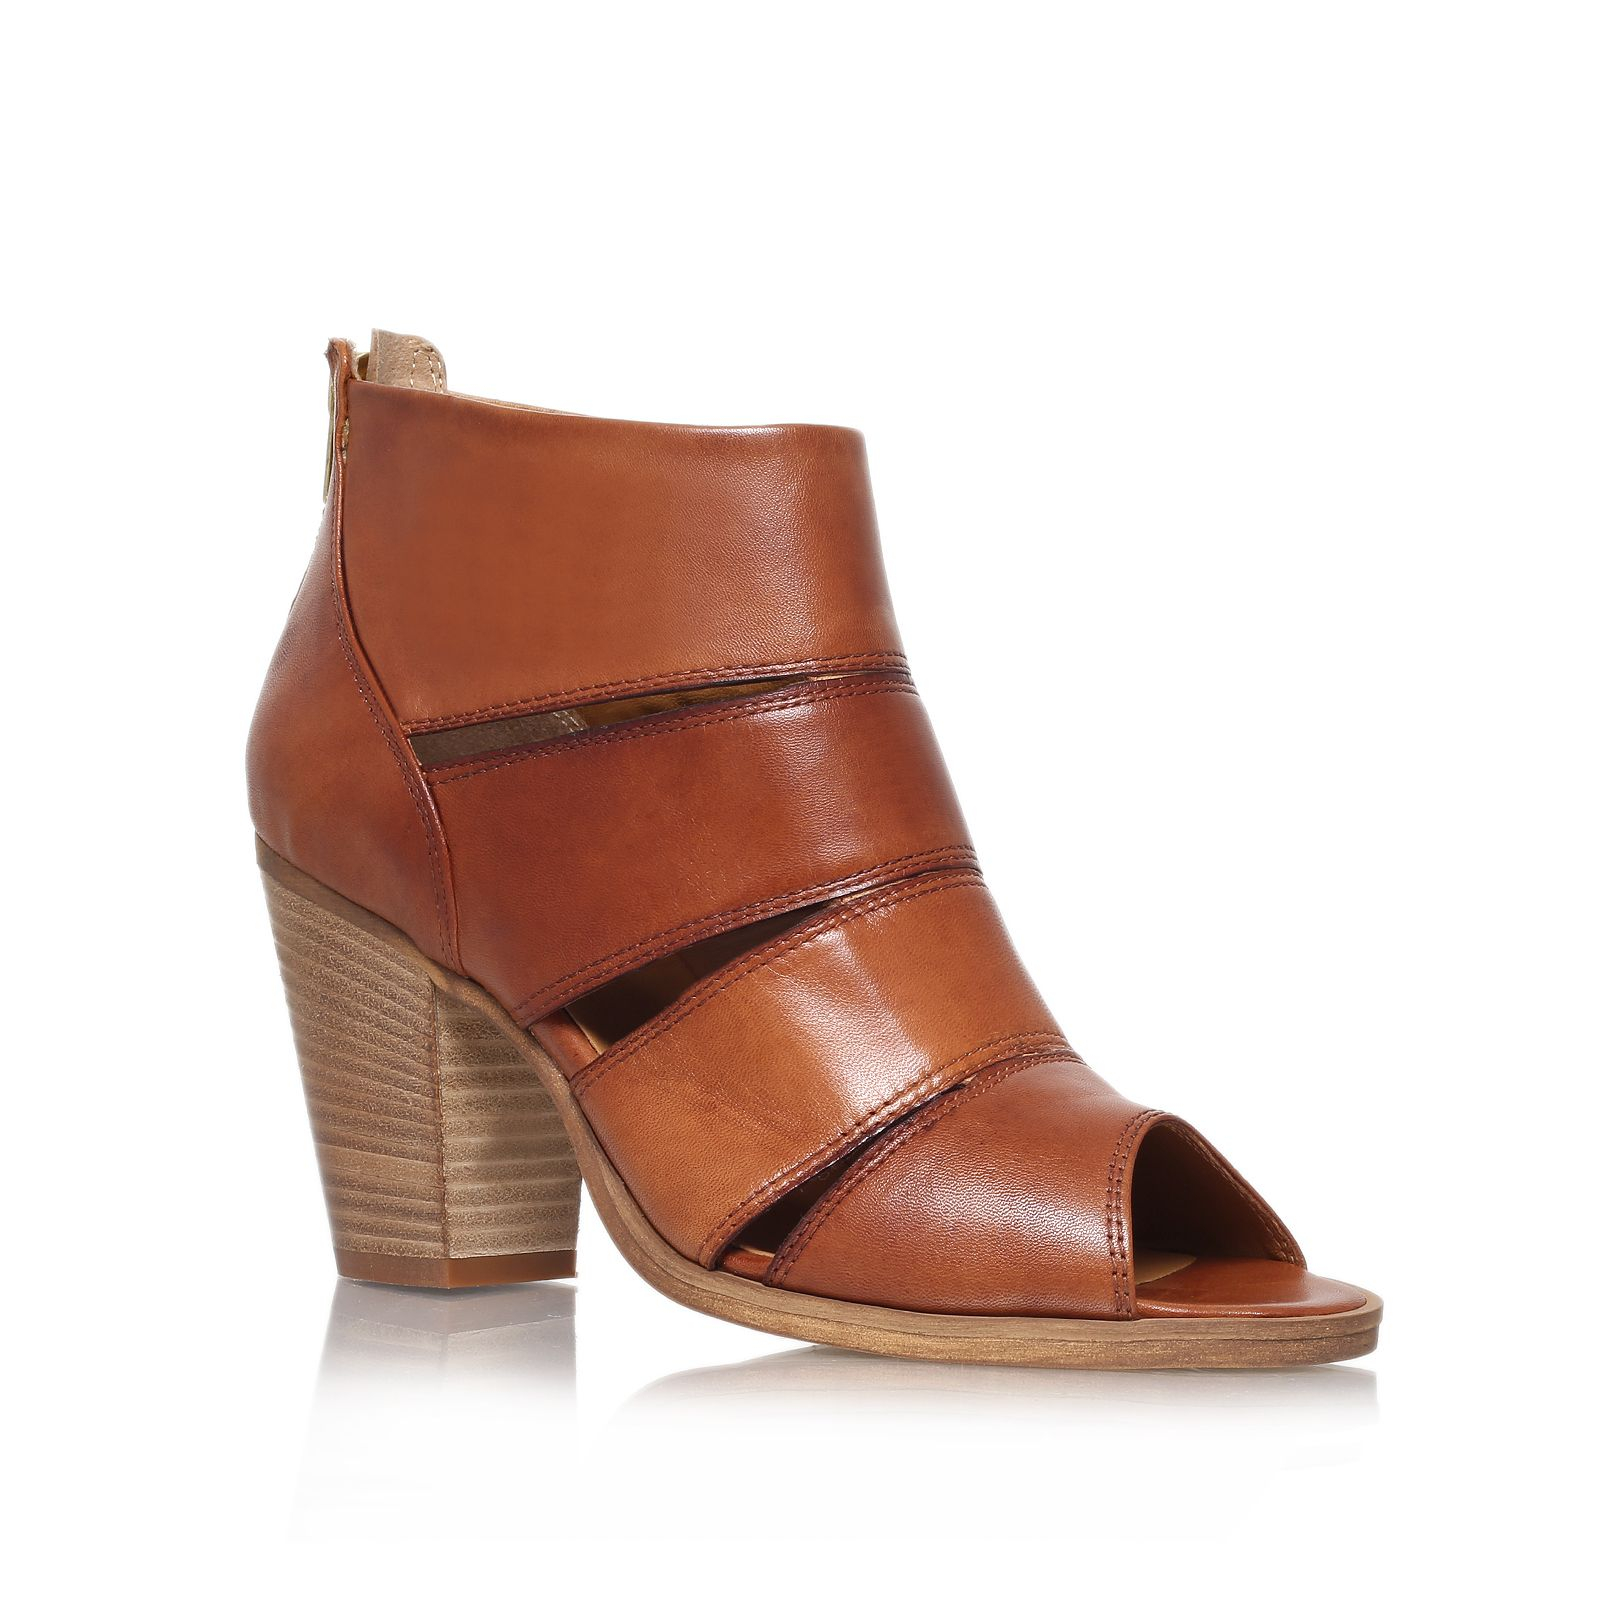 Carvela Kurt Geiger Kiwi High Heel Ankle Boots In Brown (Tan) | Lyst